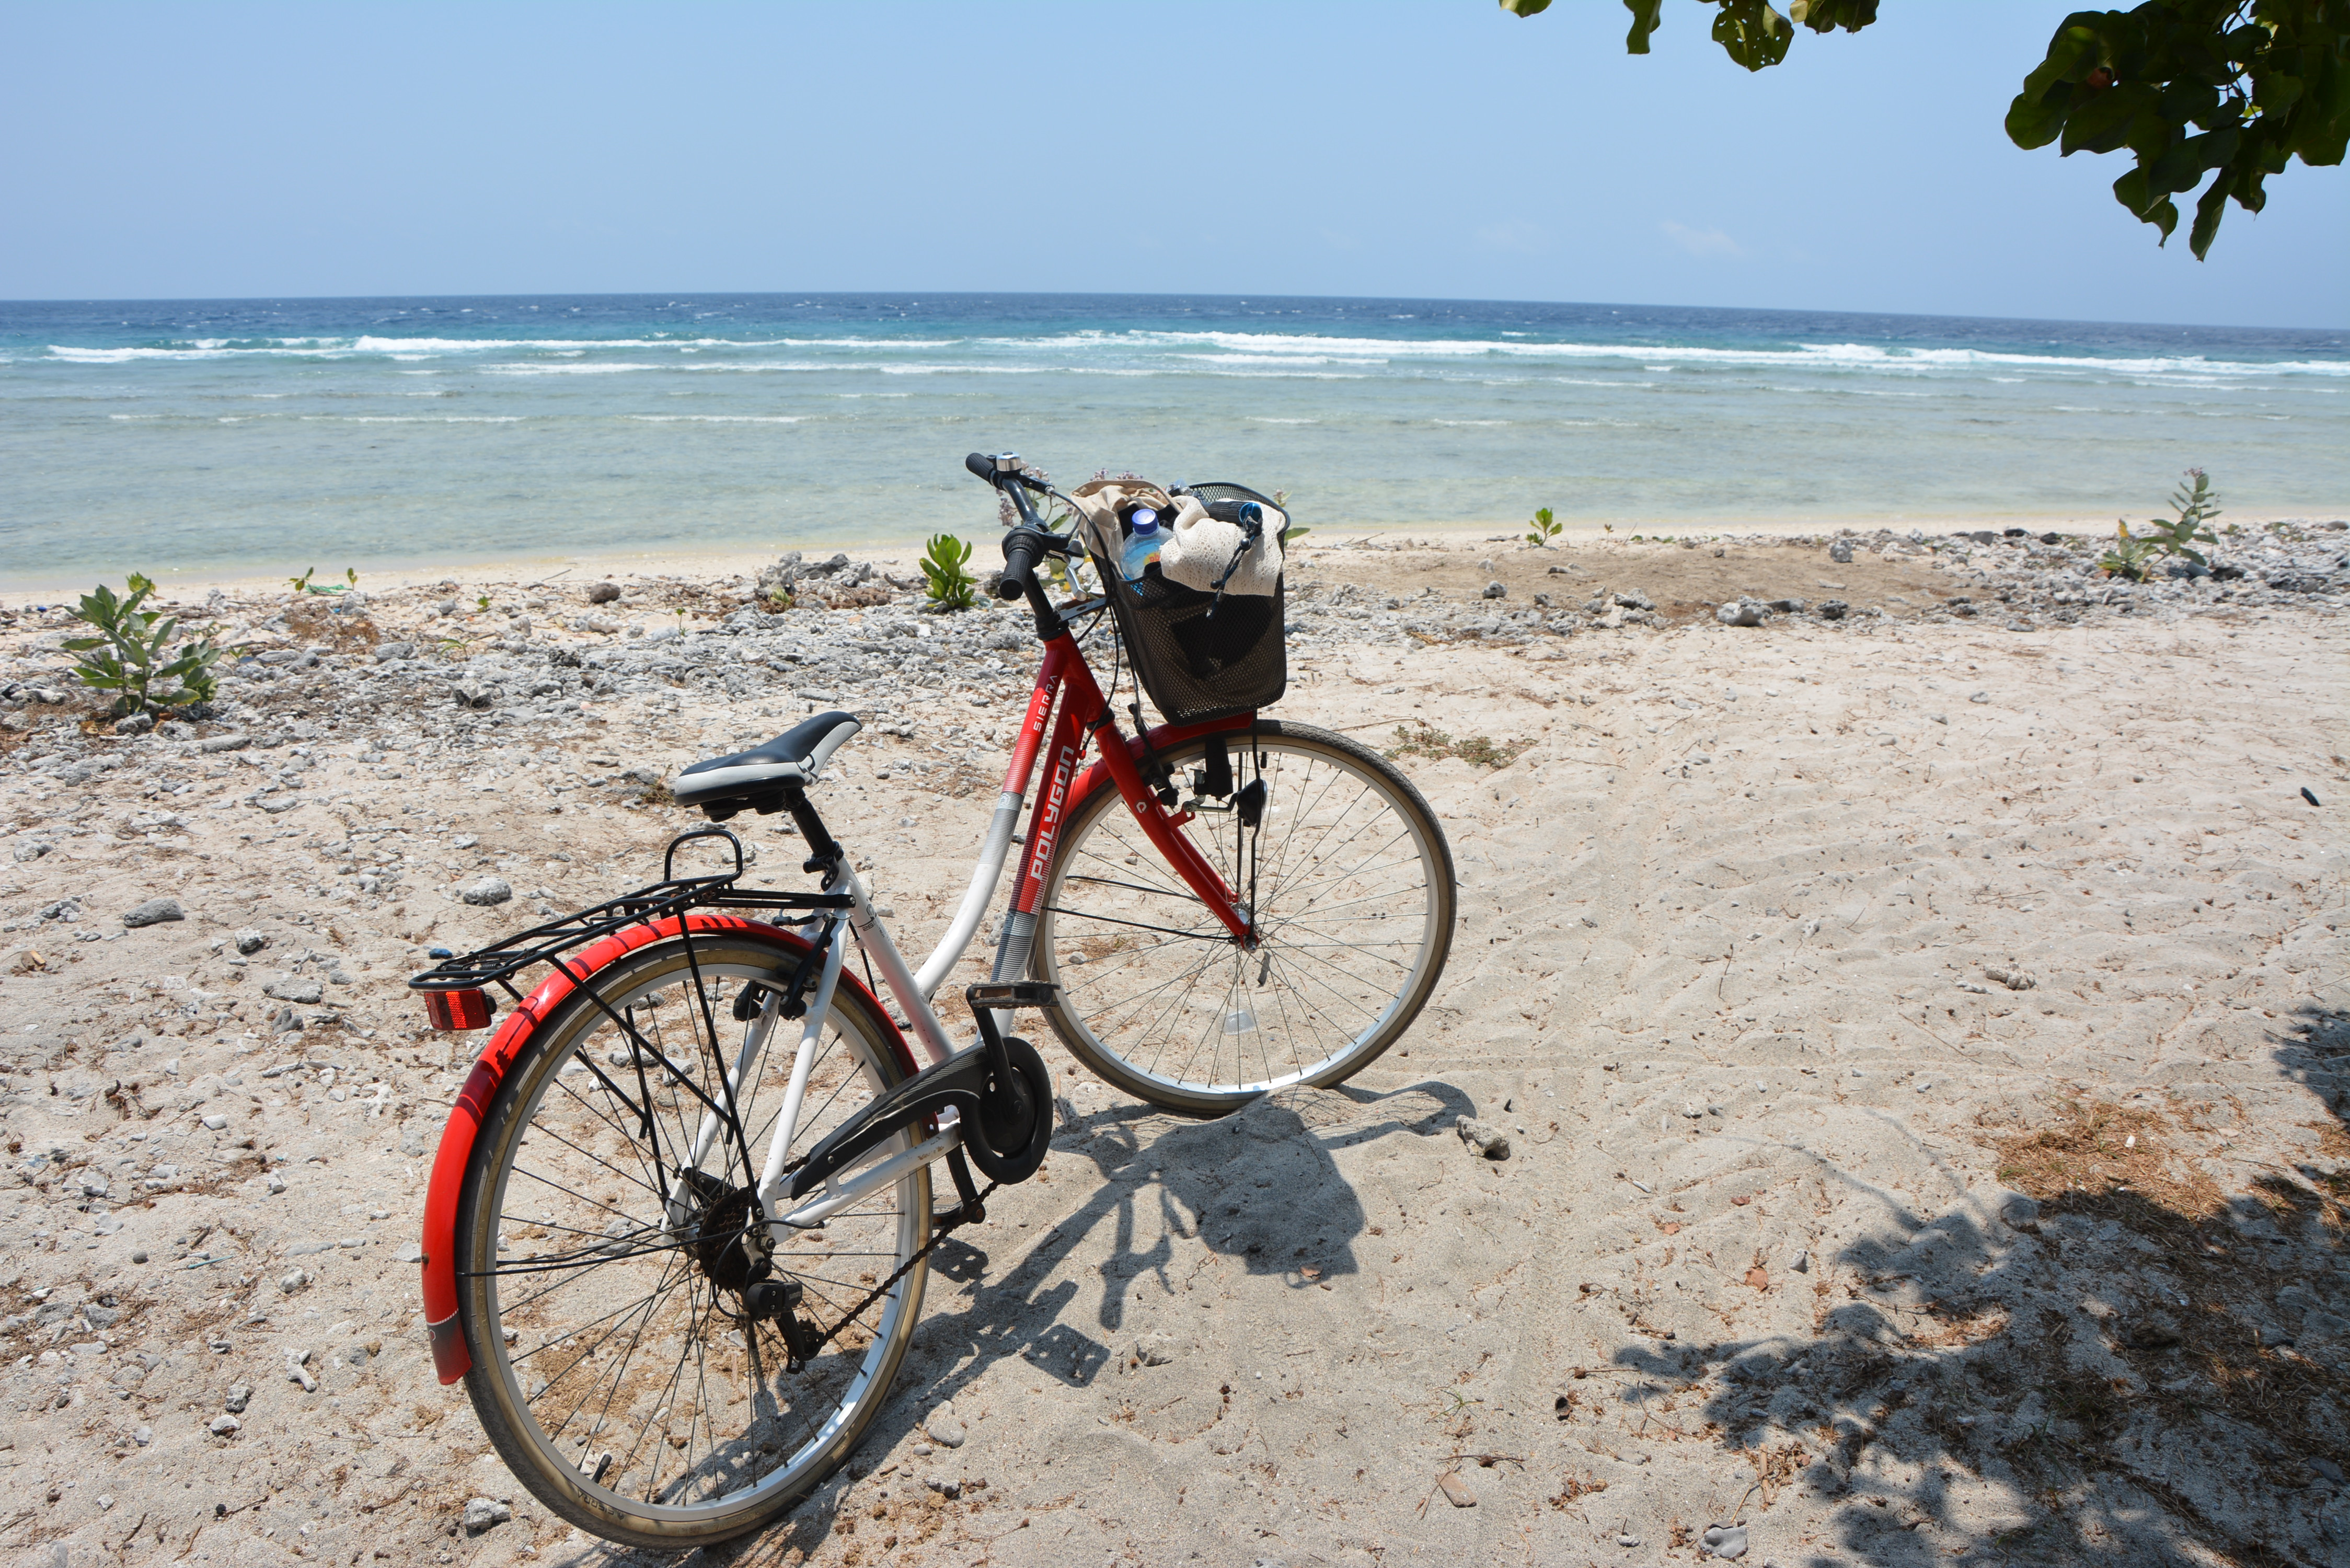 Hiring a bike on Gili t